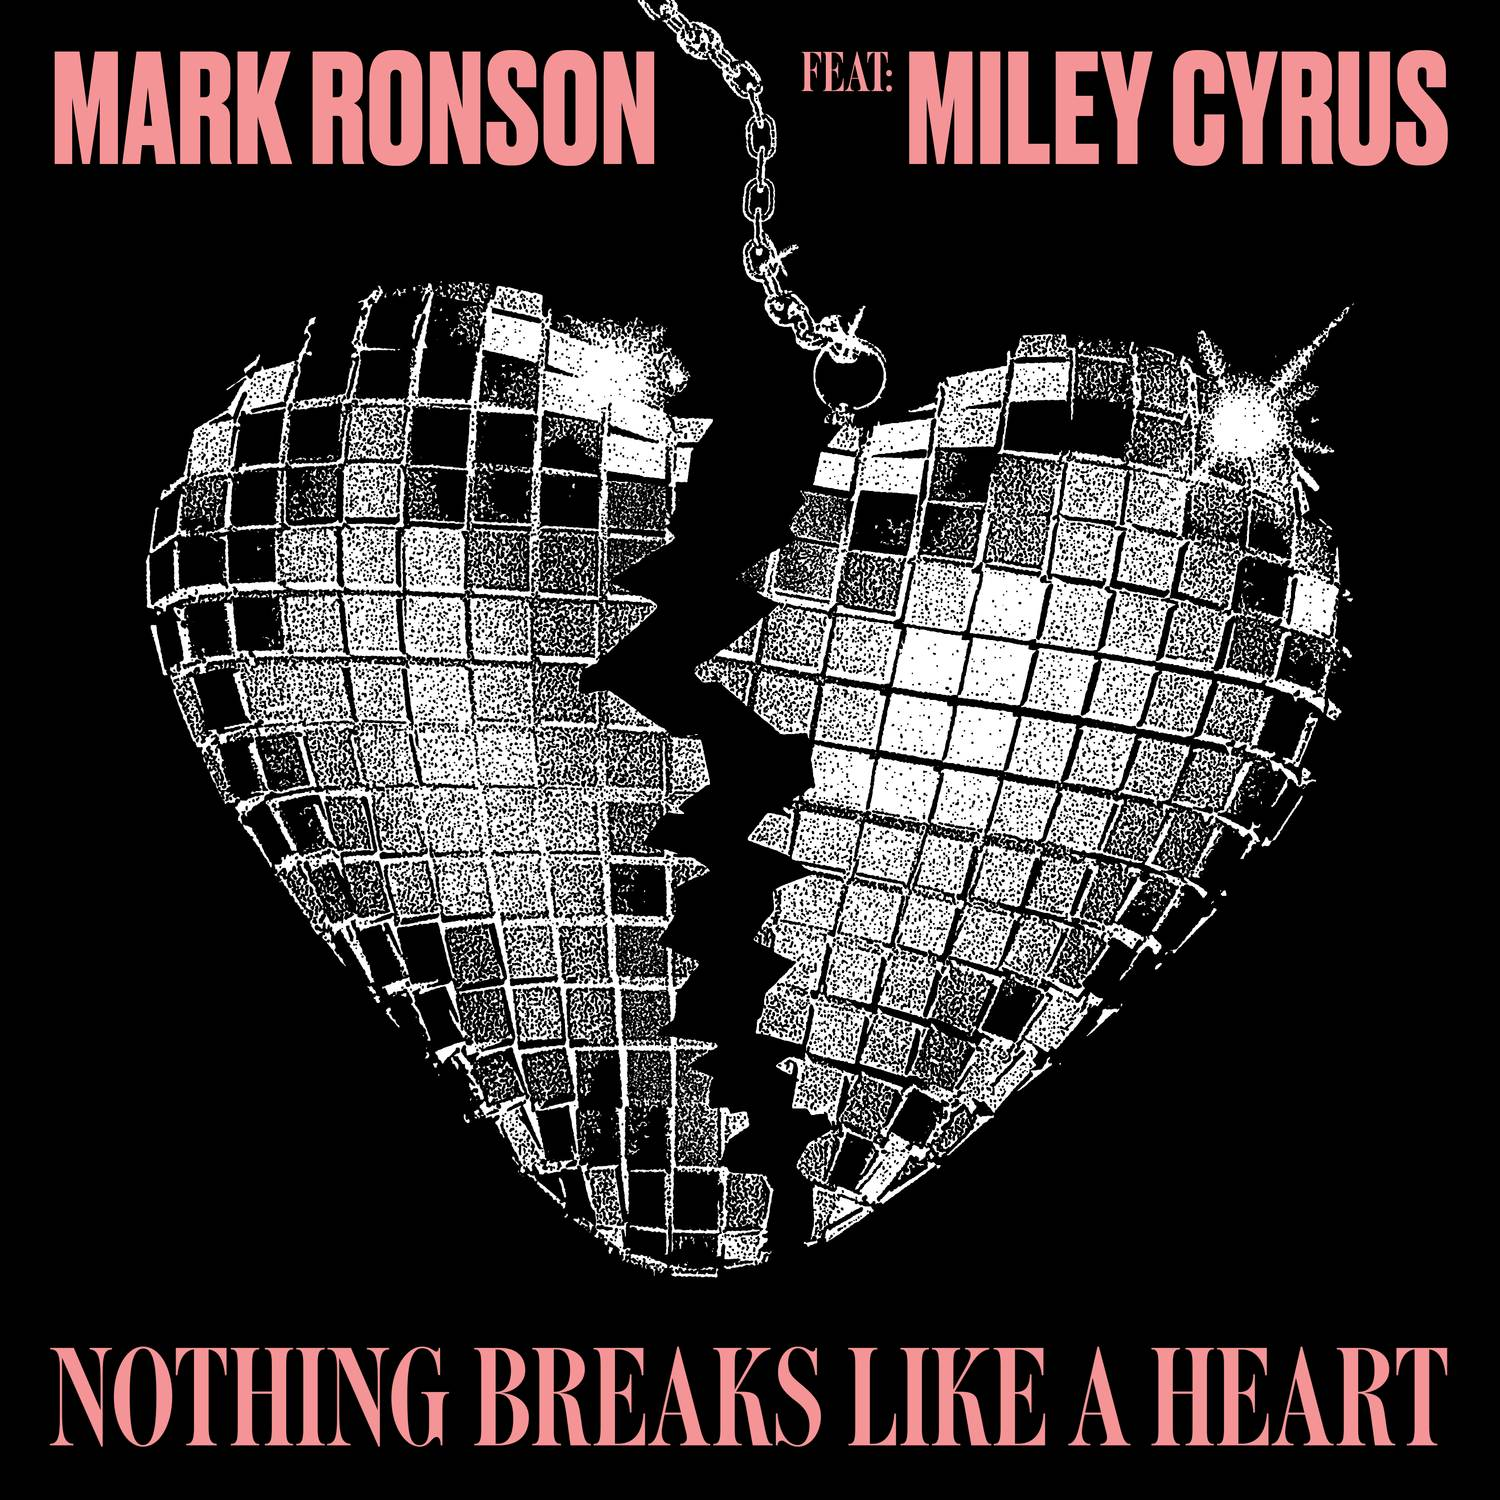 Cover: Nothing breaks like a heart, Mark Ronson feat. Miley Cyrus